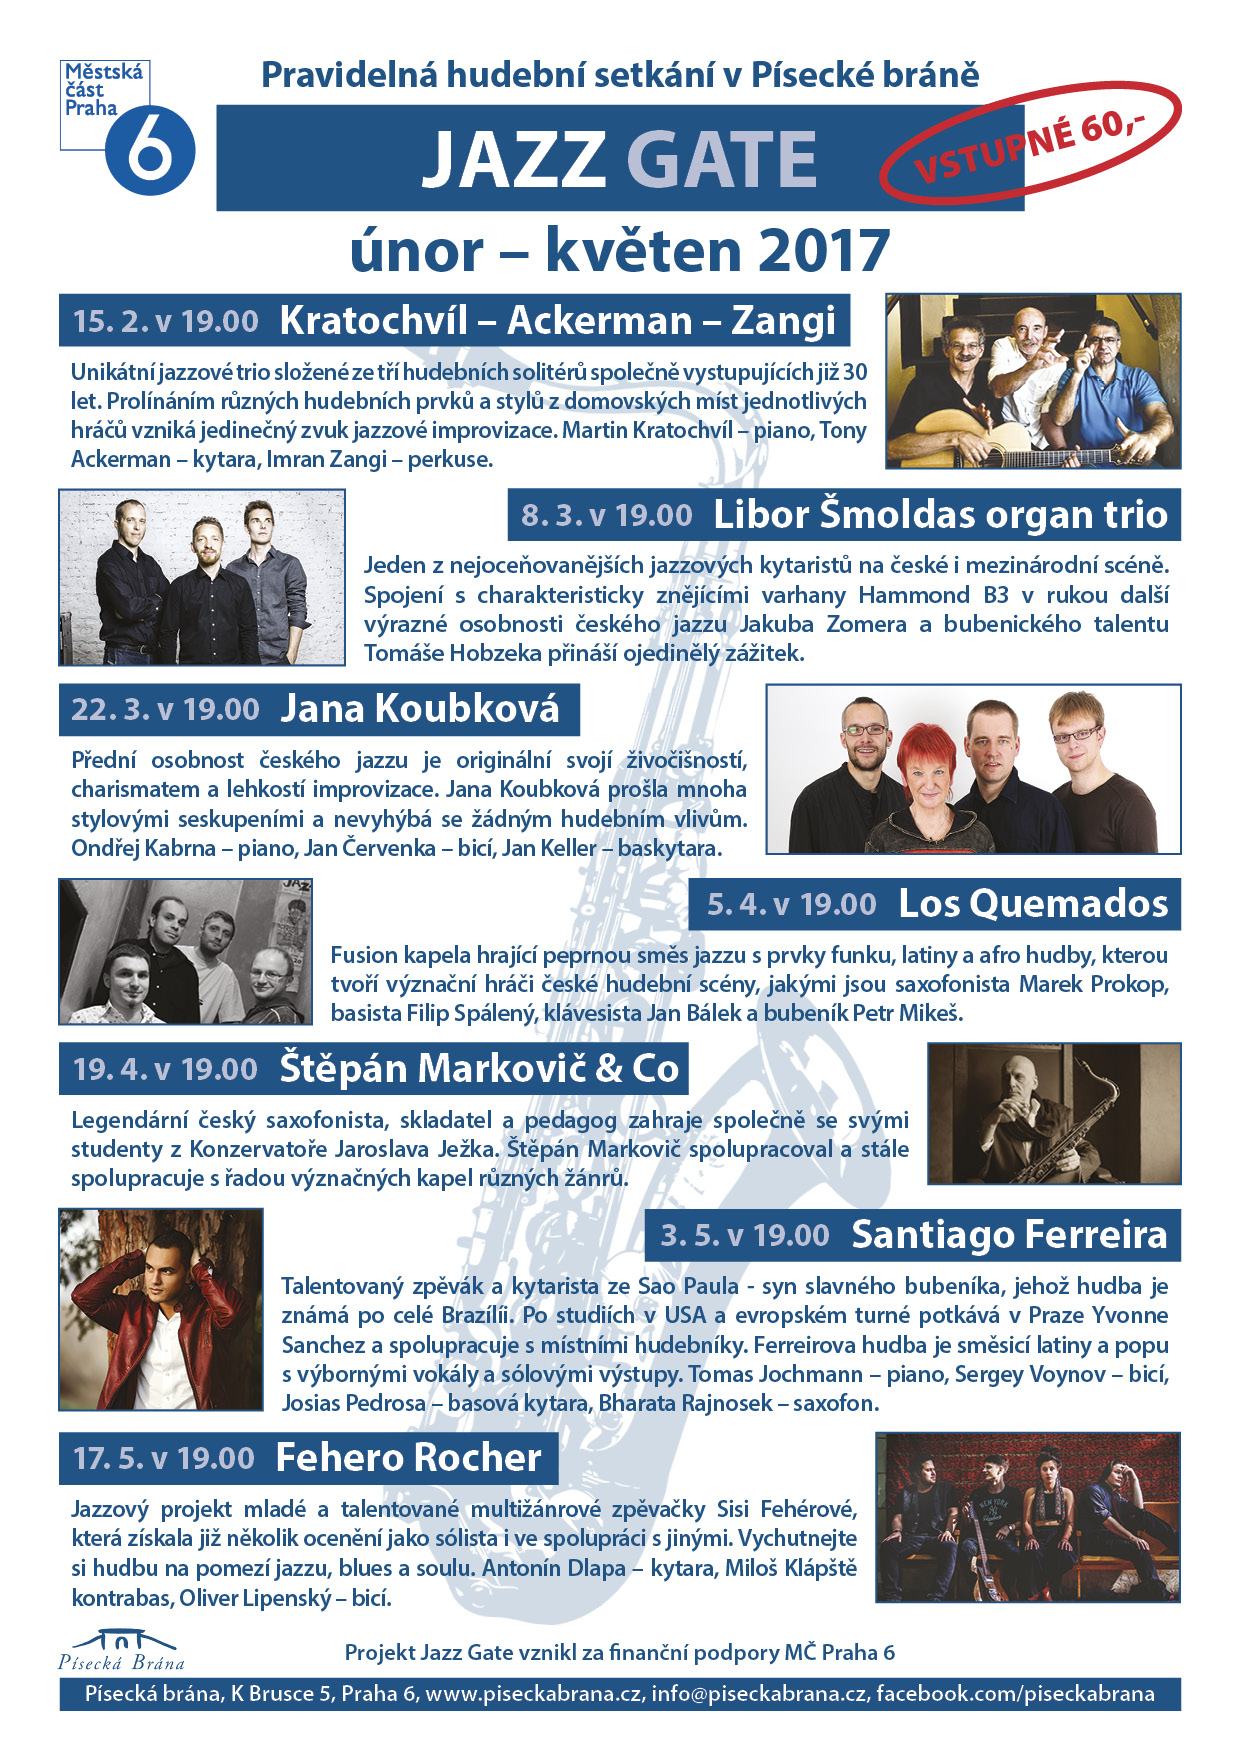 PROGRAM JAZZ GATE UNOR KVETEN 2017